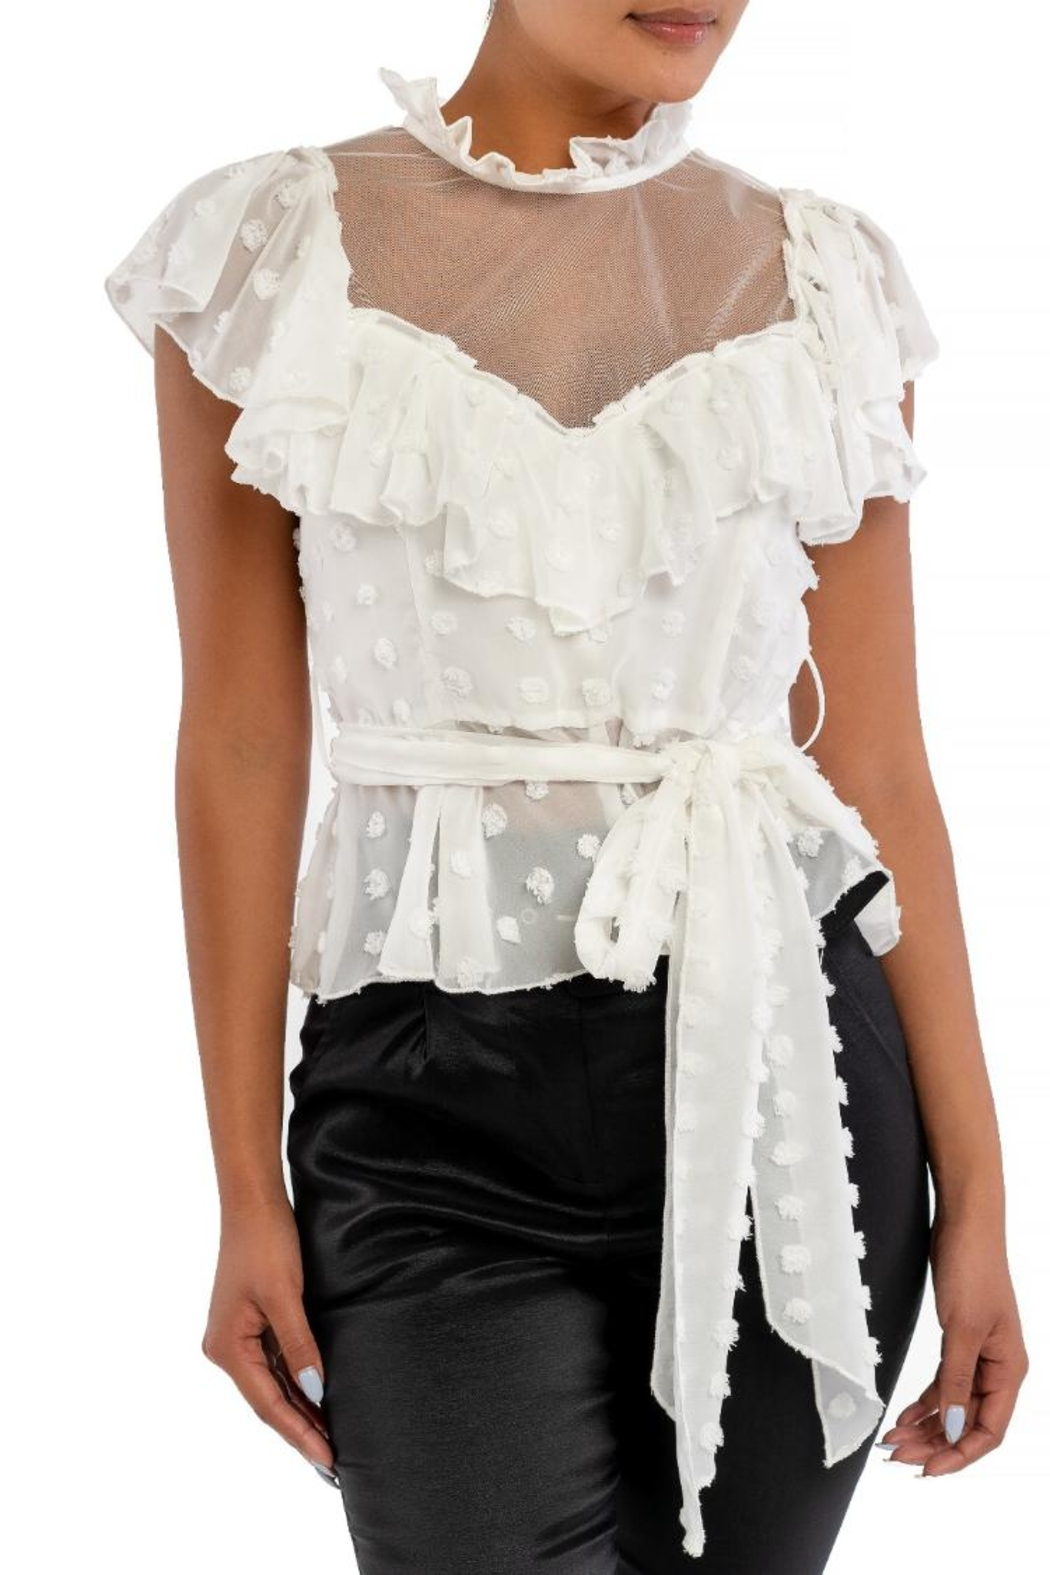 luxxel Ruffle Puff Wrap-Top - Front Cropped Image